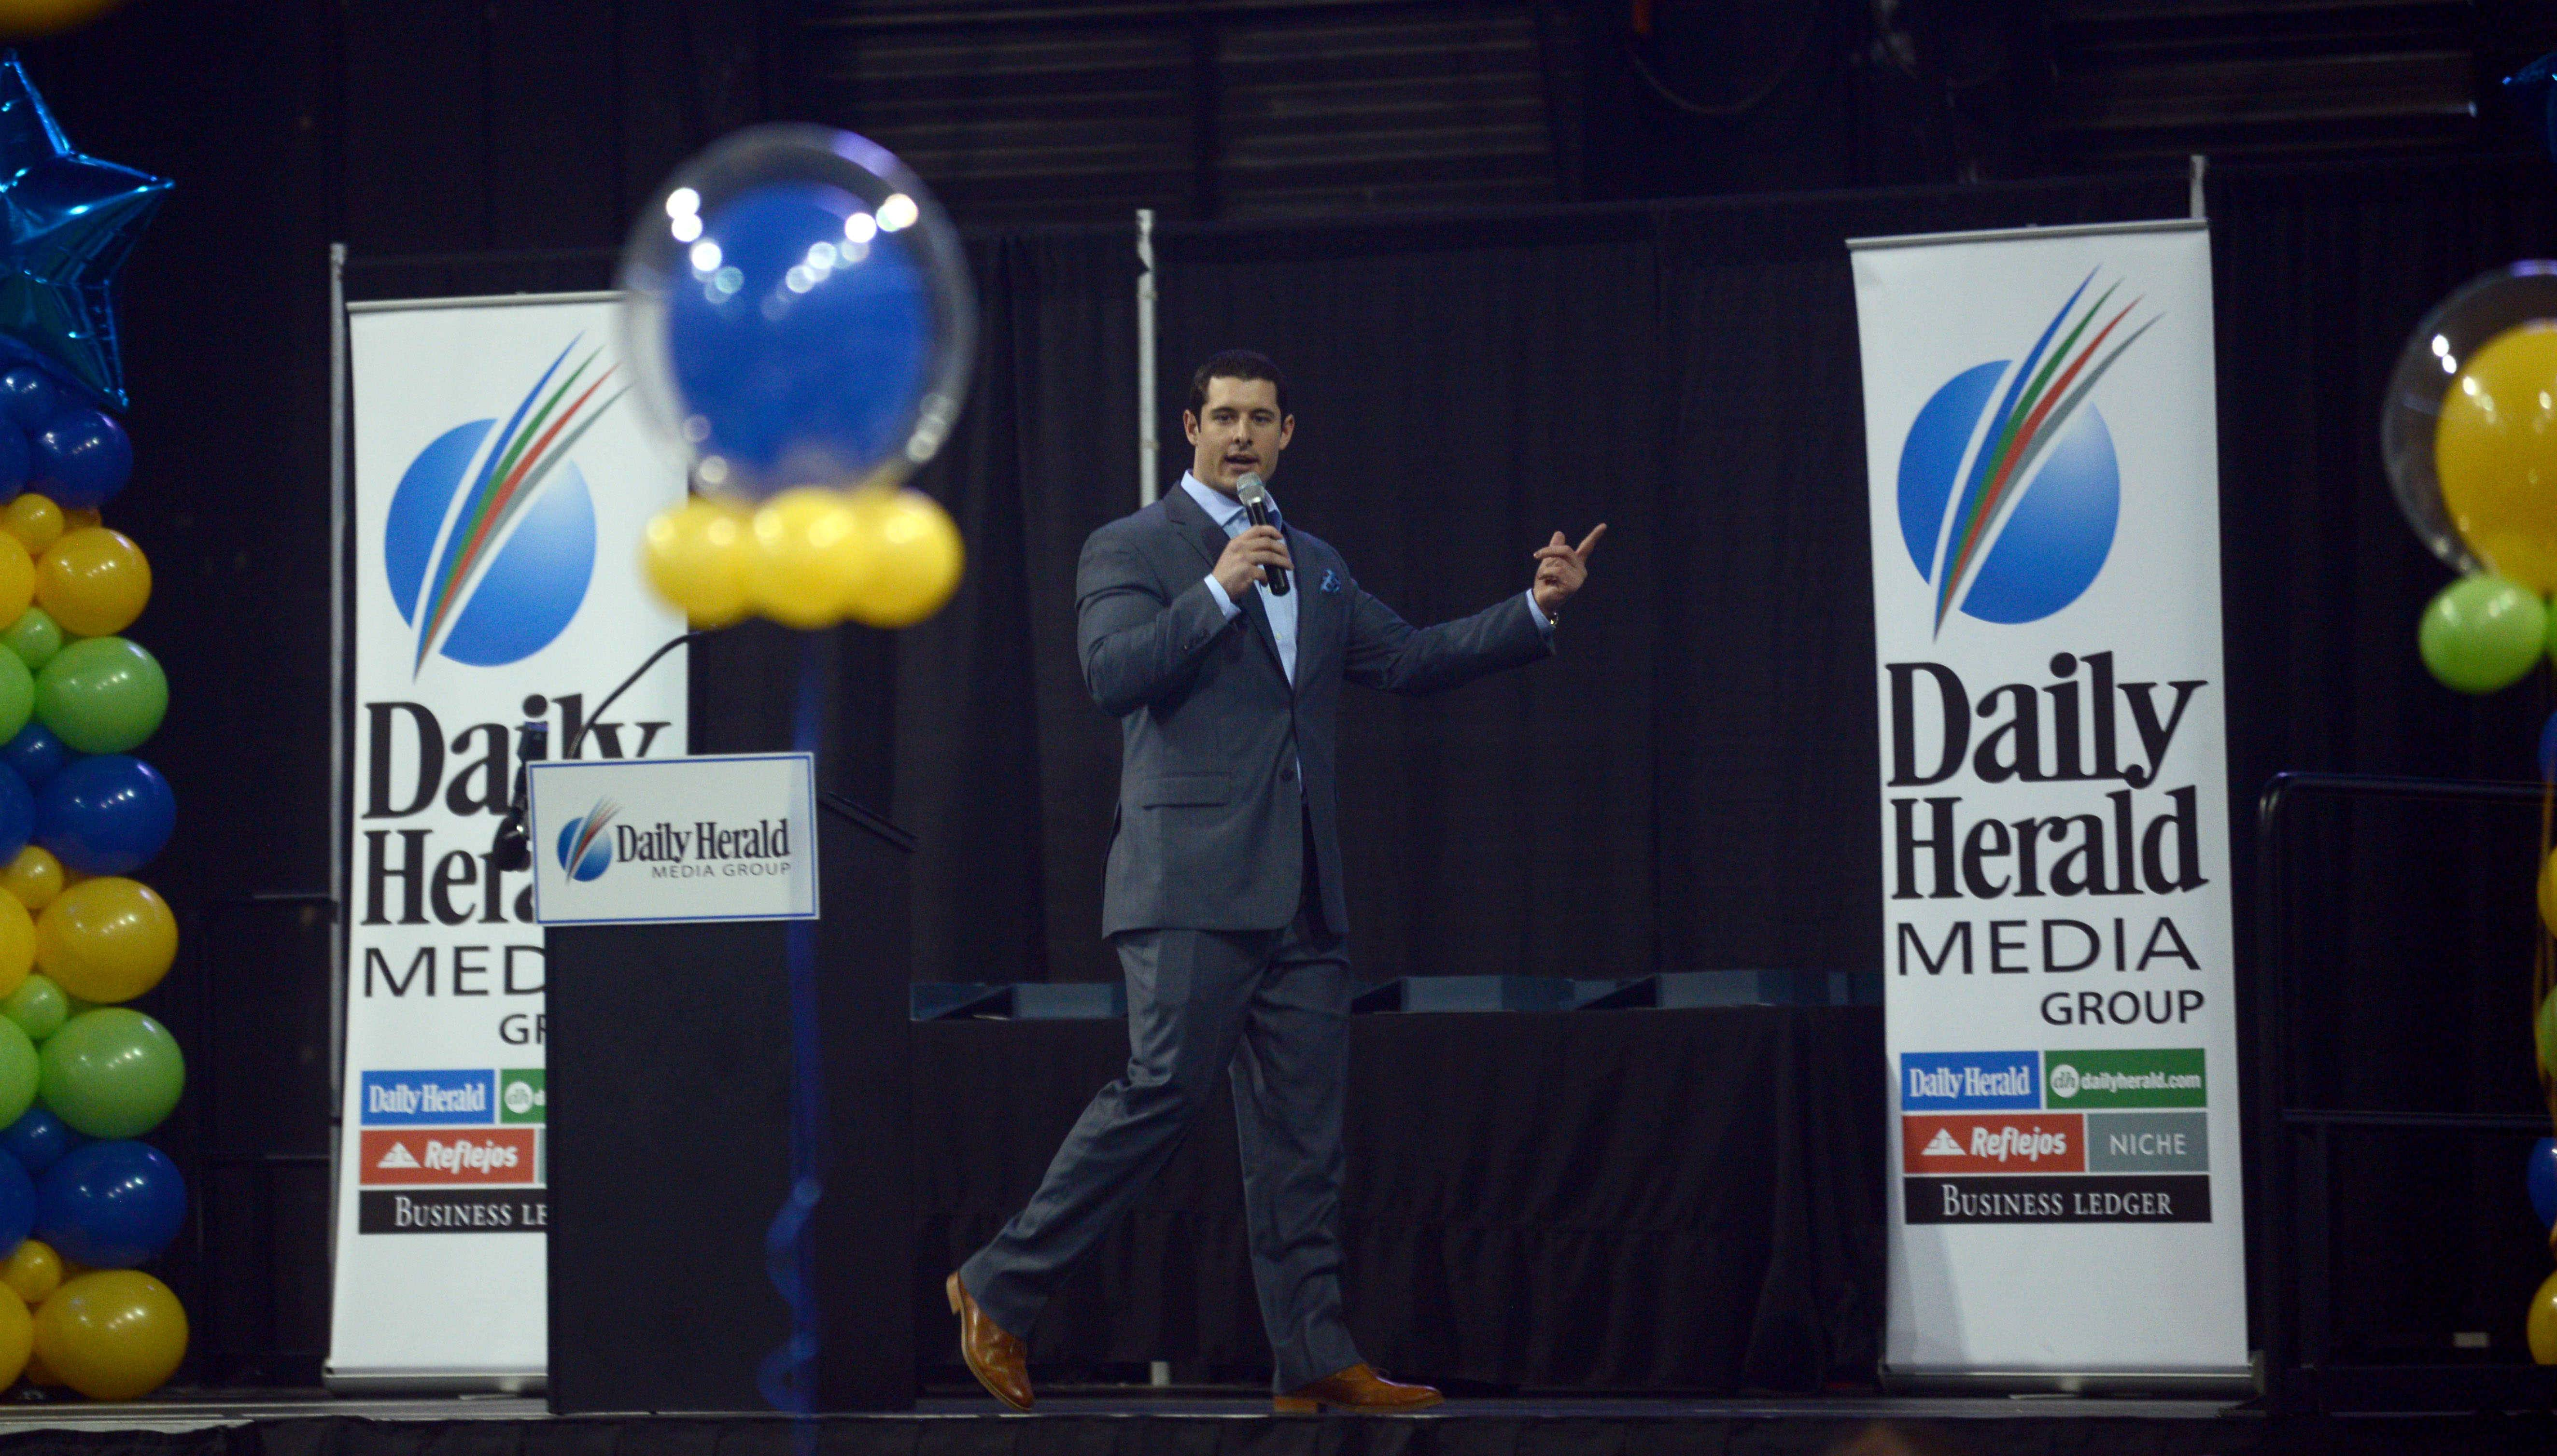 Keynote speaker Matt Mayberry offers his remarks during the Daily Herald Prep Sports Excellence event at the Sears Centre in Hoffman Estates on Sunday afternoon.